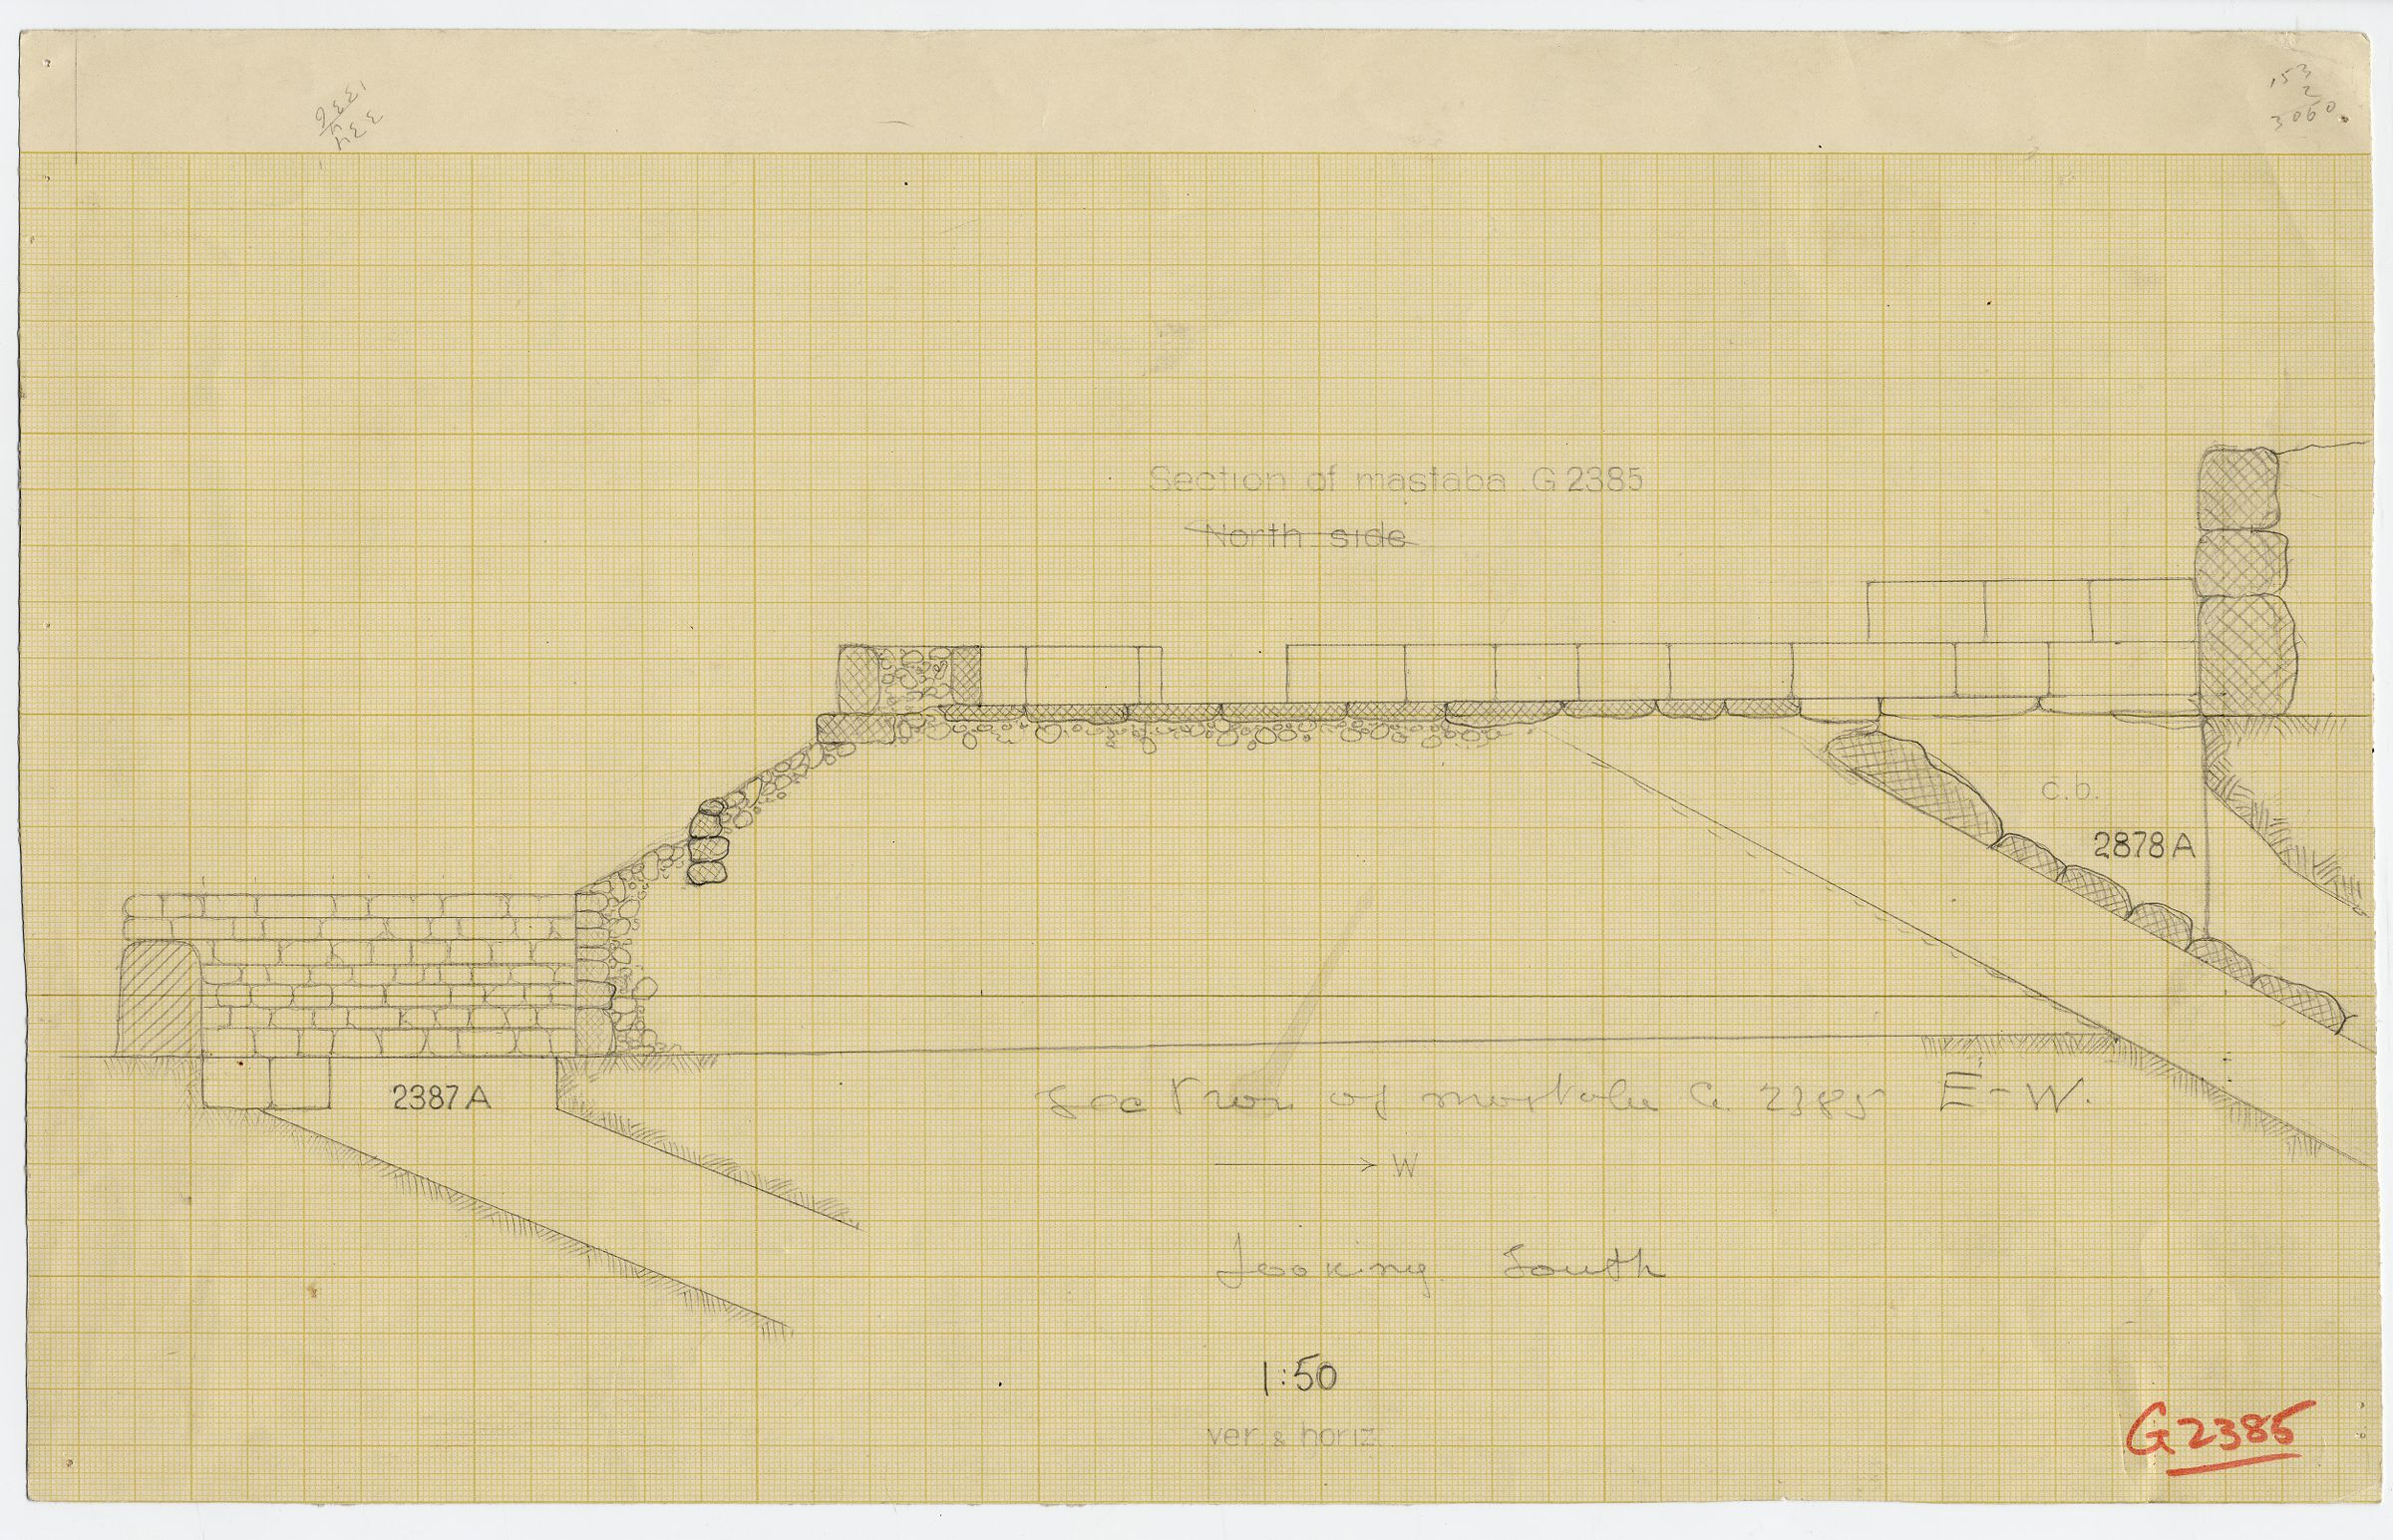 Maps and plans: G 2385, Section, with locations of G 2387, Shaft  A and G 2378, Shaft A